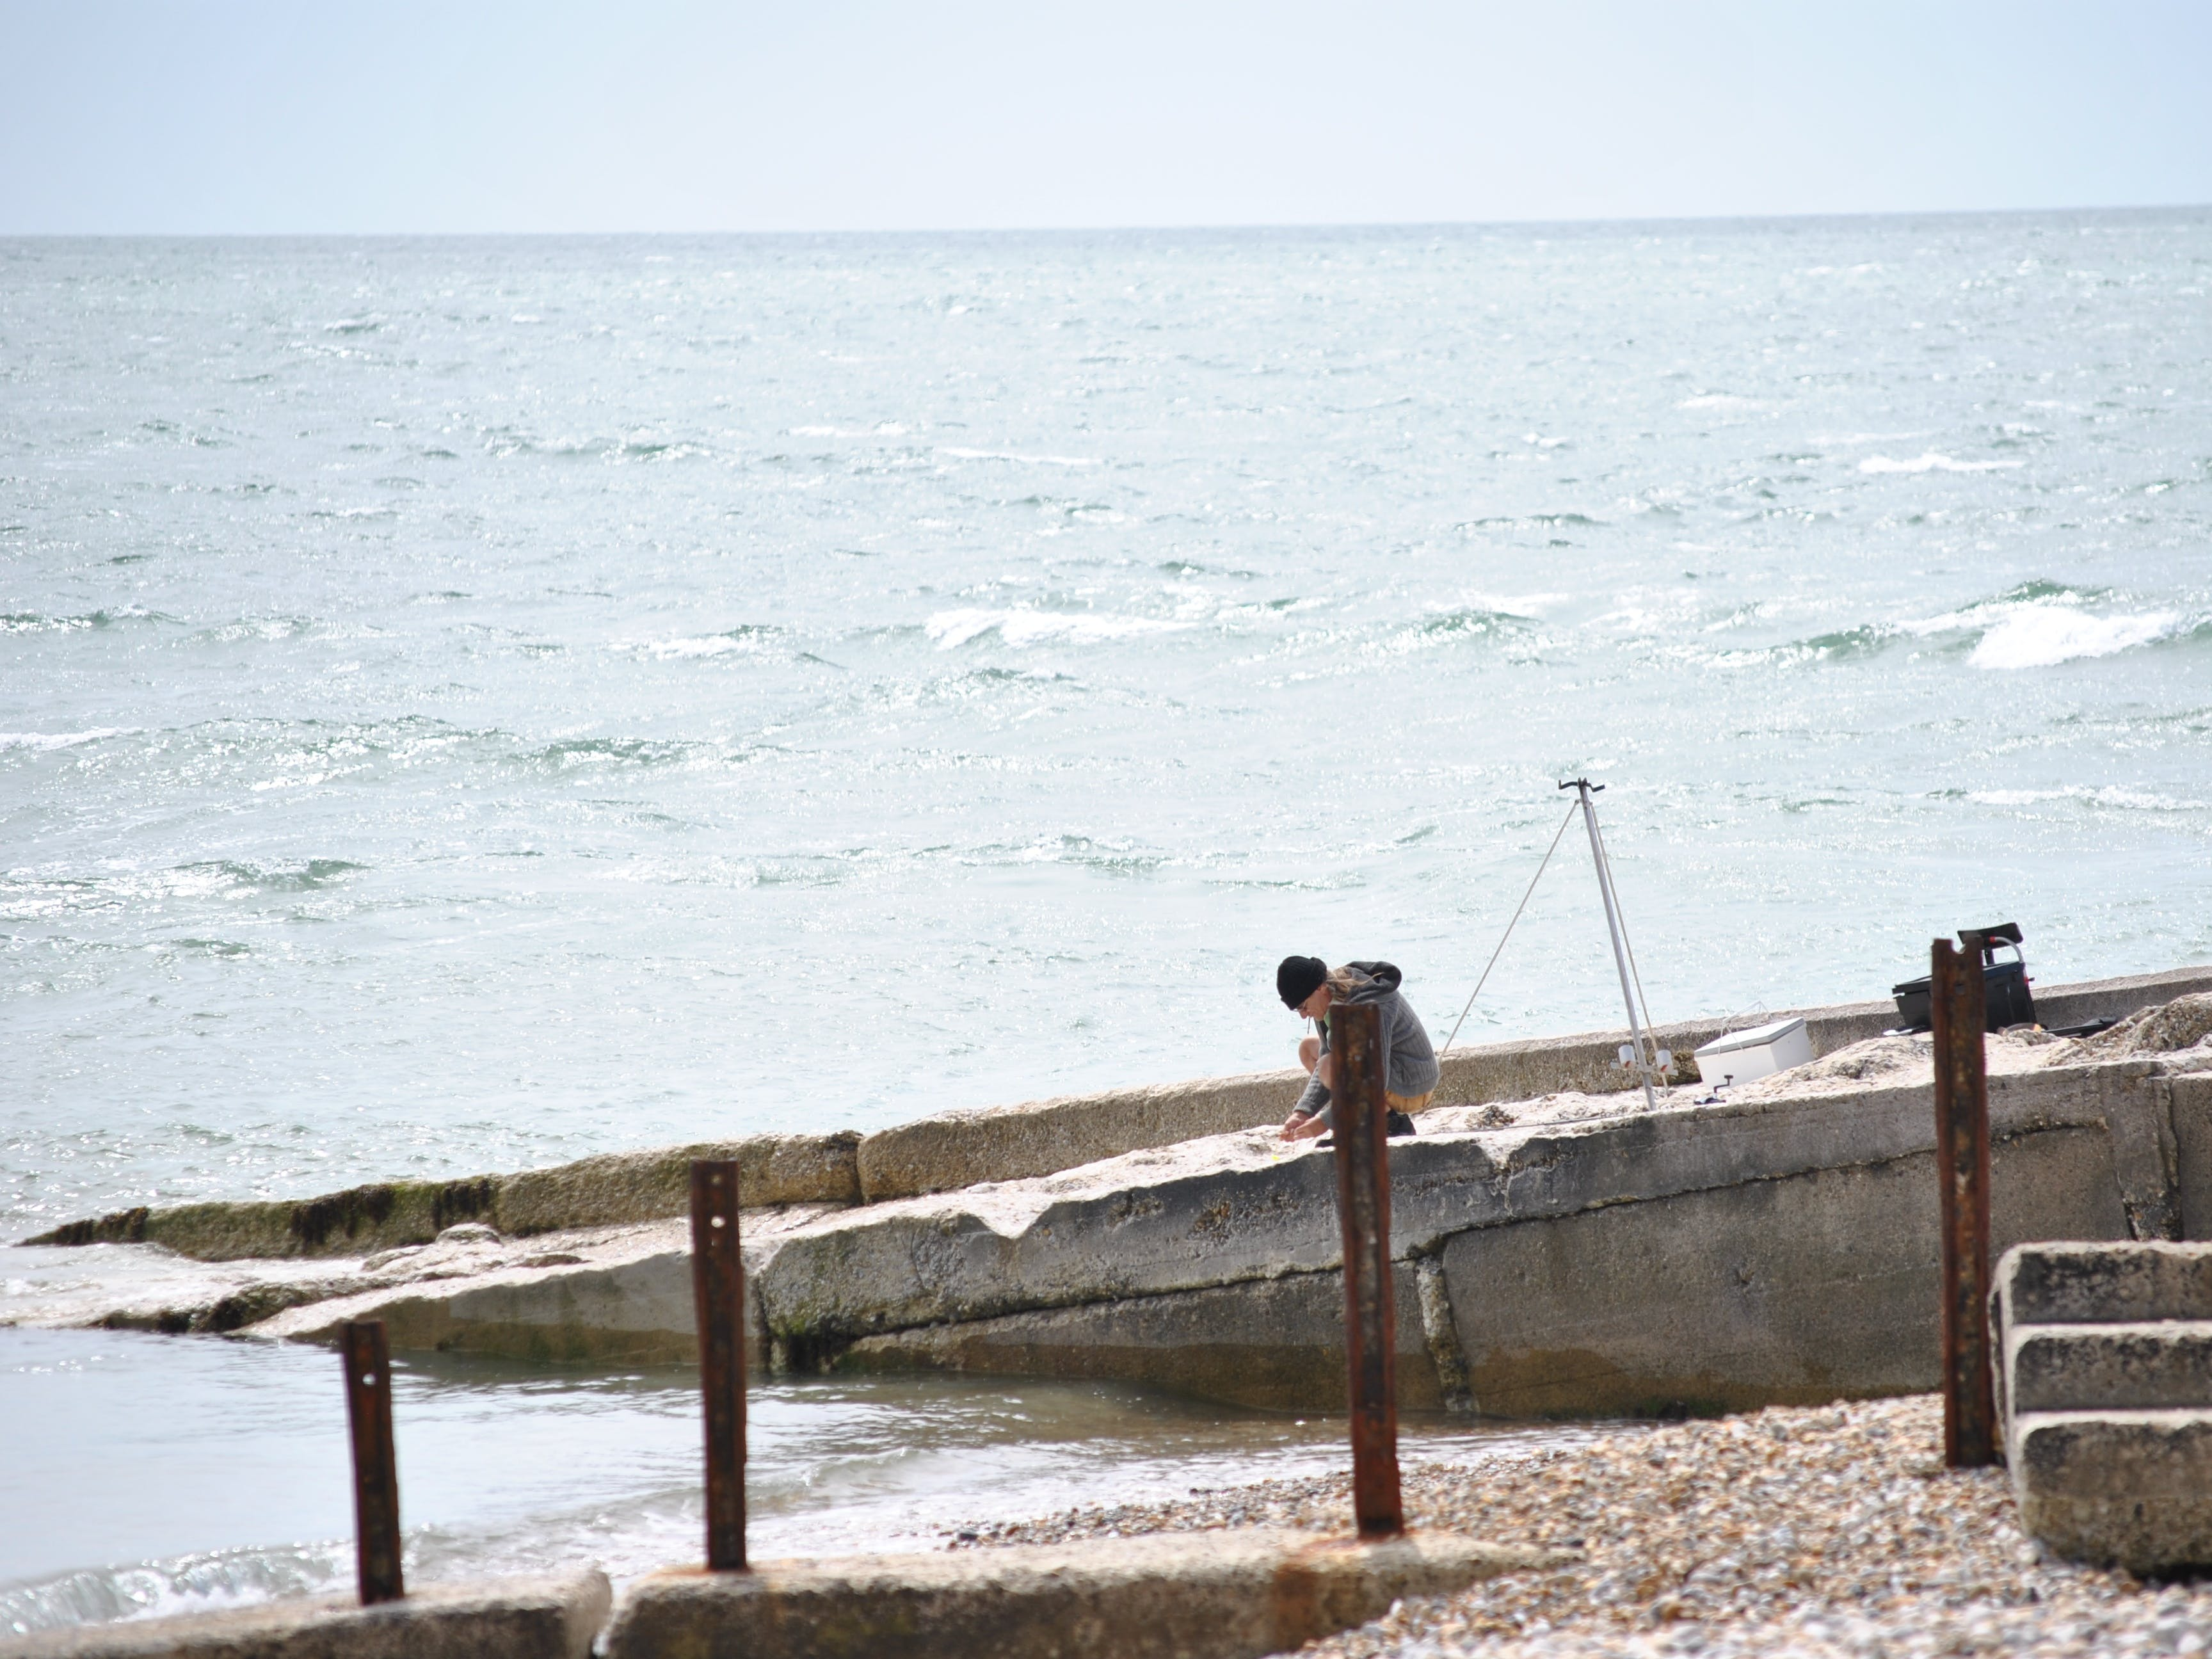 Sea angler getting his bait ready for fishing at Selsey Bill